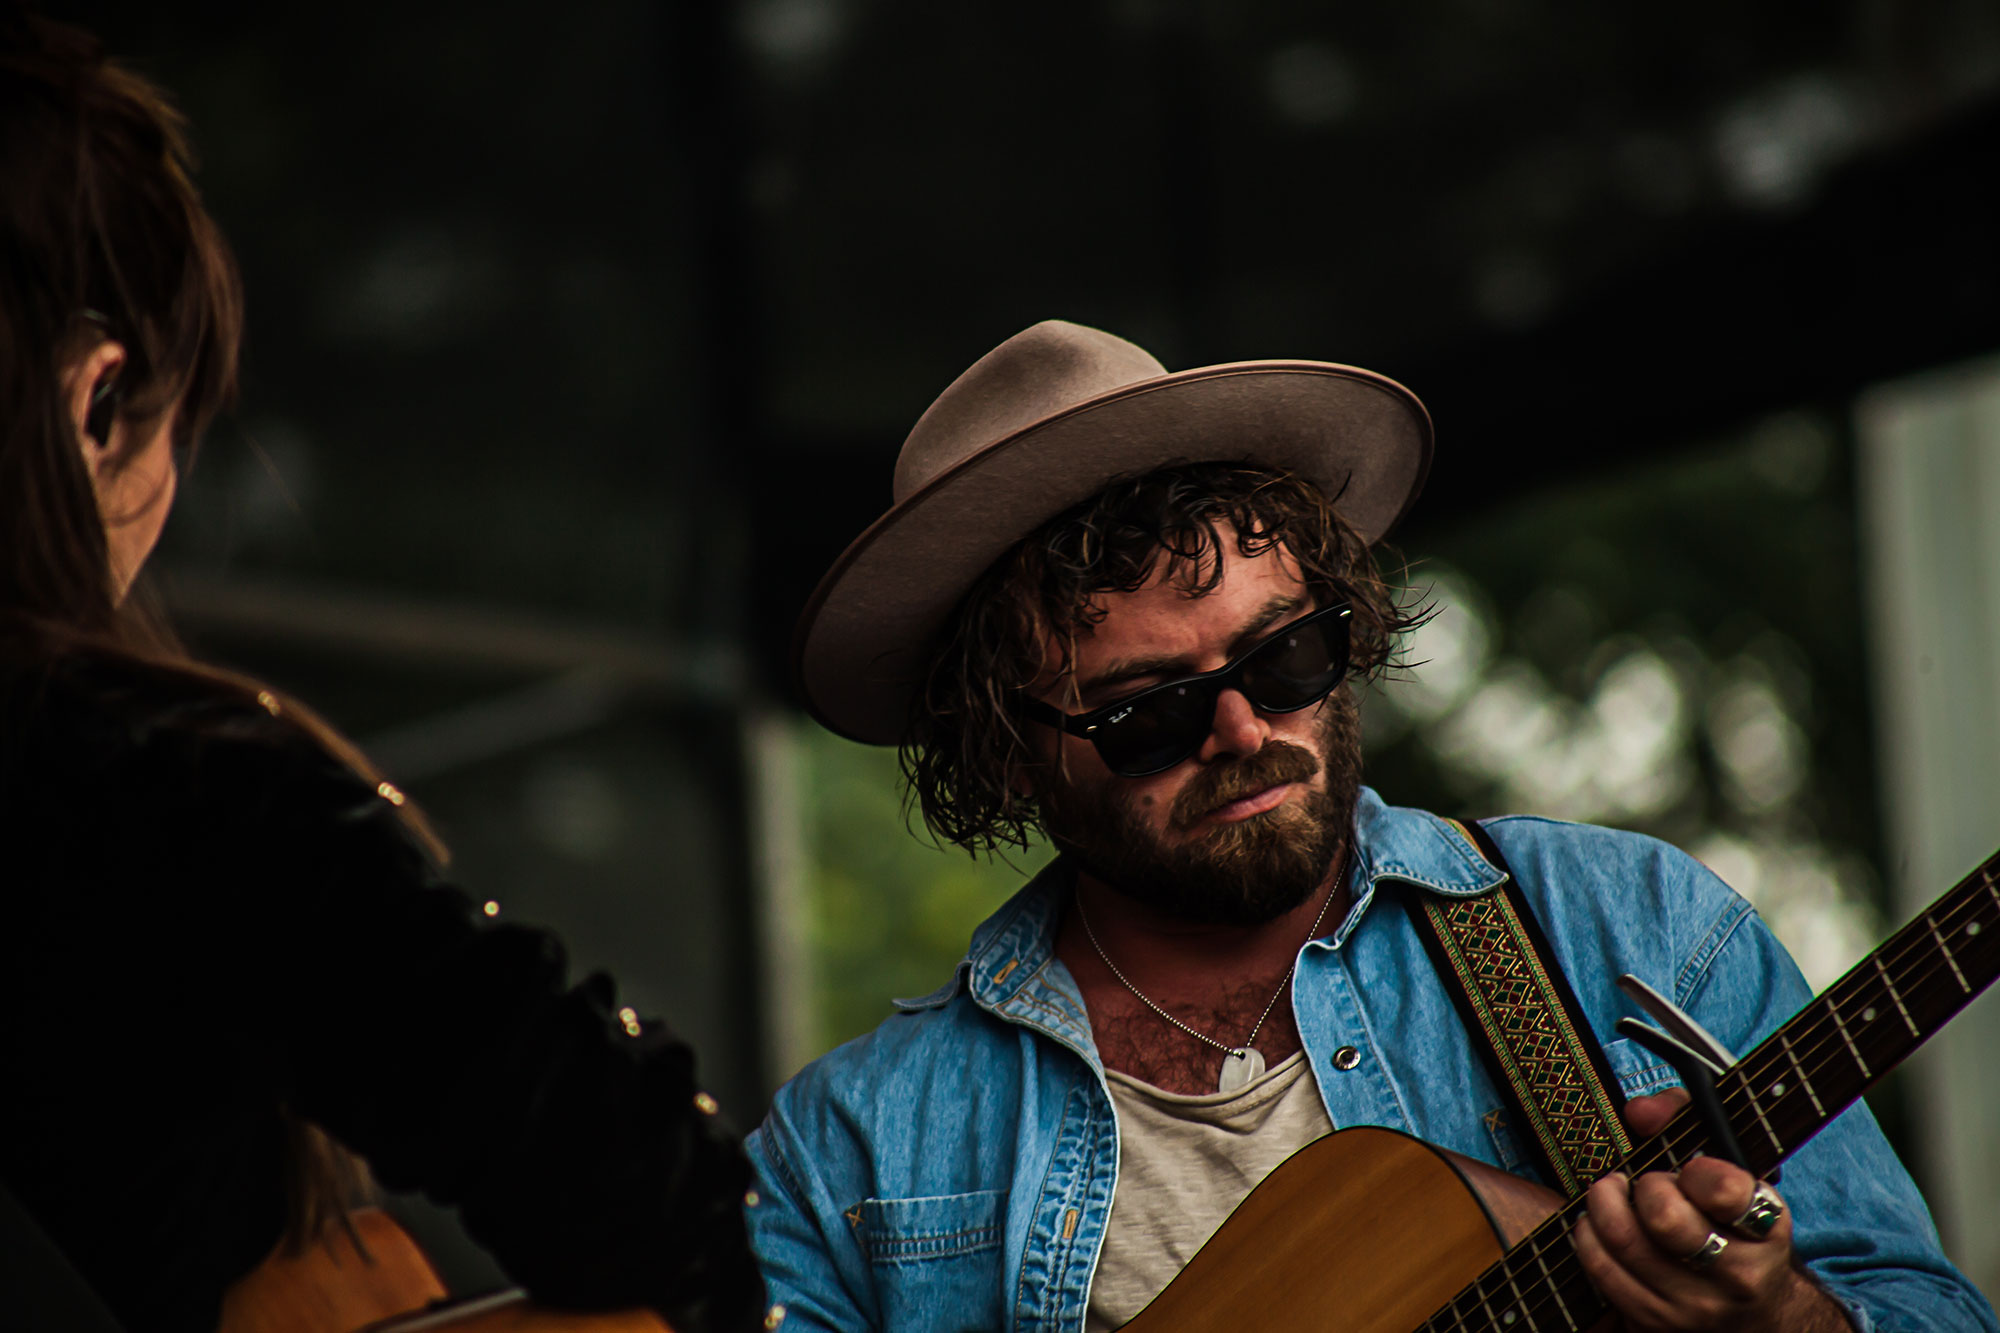 Angus & Julia Stone brings it at Parklife